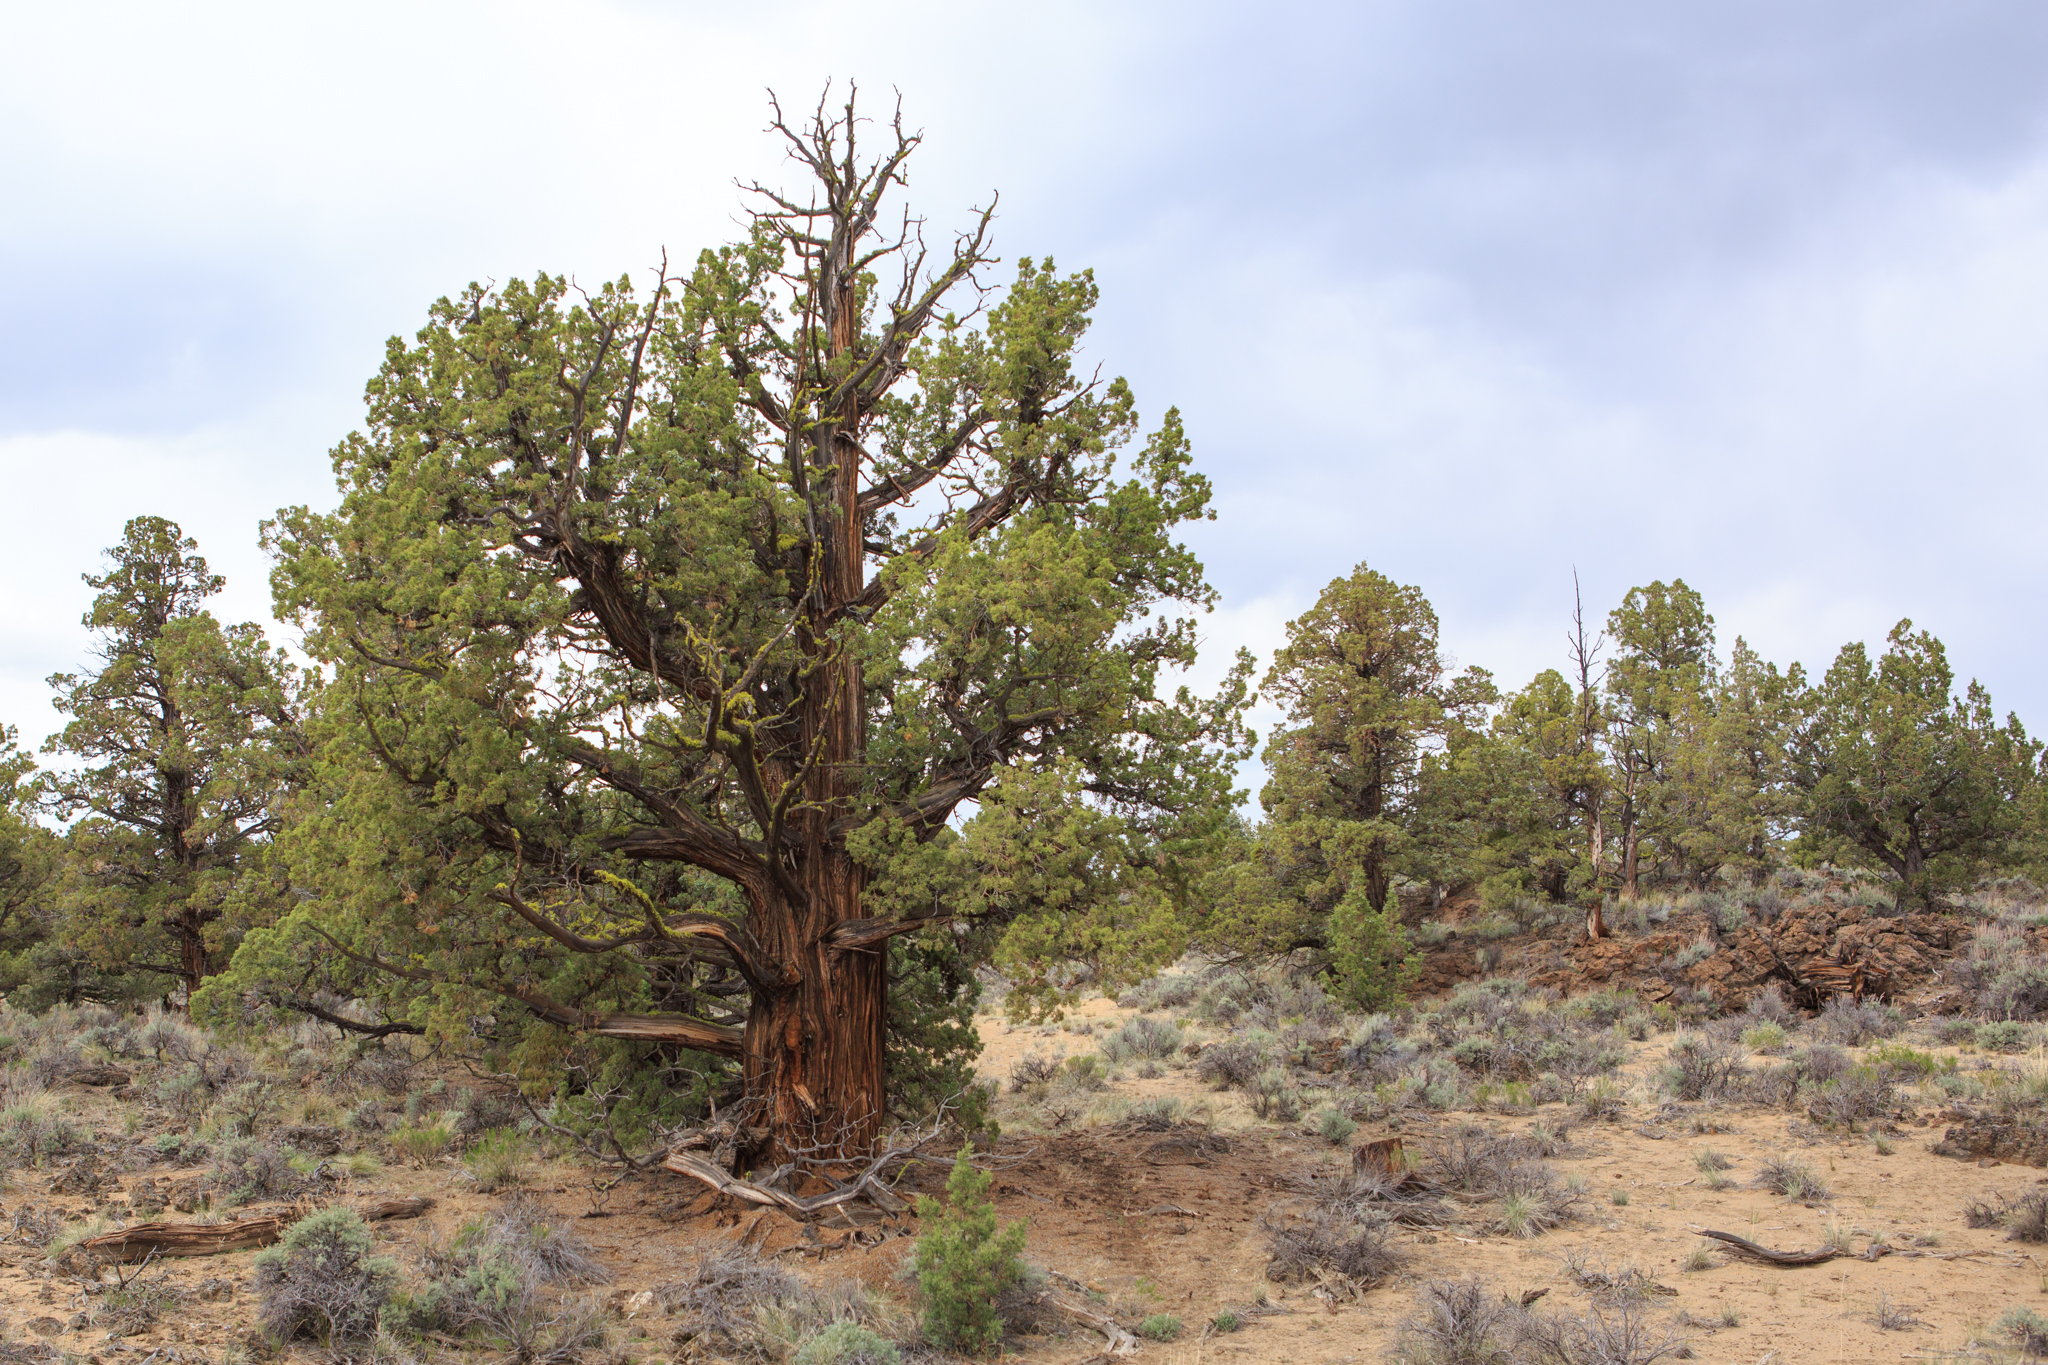 Older juniper trees have a squat and round shape compared to their younger counterparts. These hardy trees can live for hundreds of years, in some cases more than a thousand.